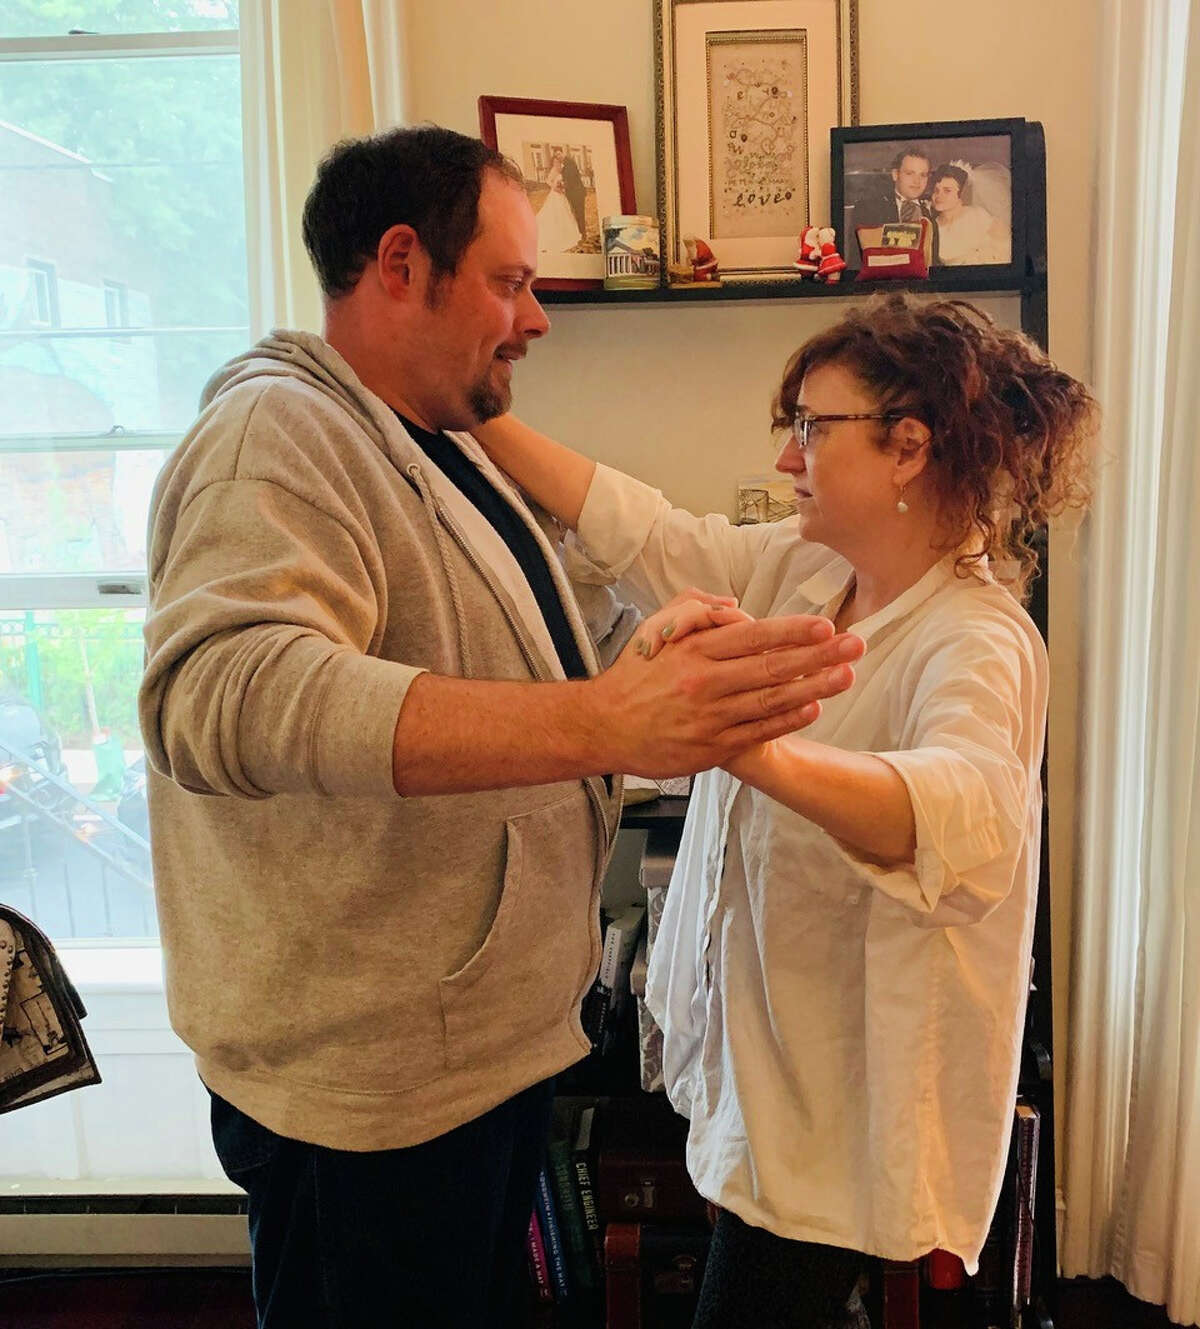 """Jeremy Buechner and Mary Darcy rehearse a scene for """"The Guys,"""" a play about 9/11 being produced Sept. 10 to 12 by Local Actors Guild of Saratoga at Schenectady Civic Playhouse."""